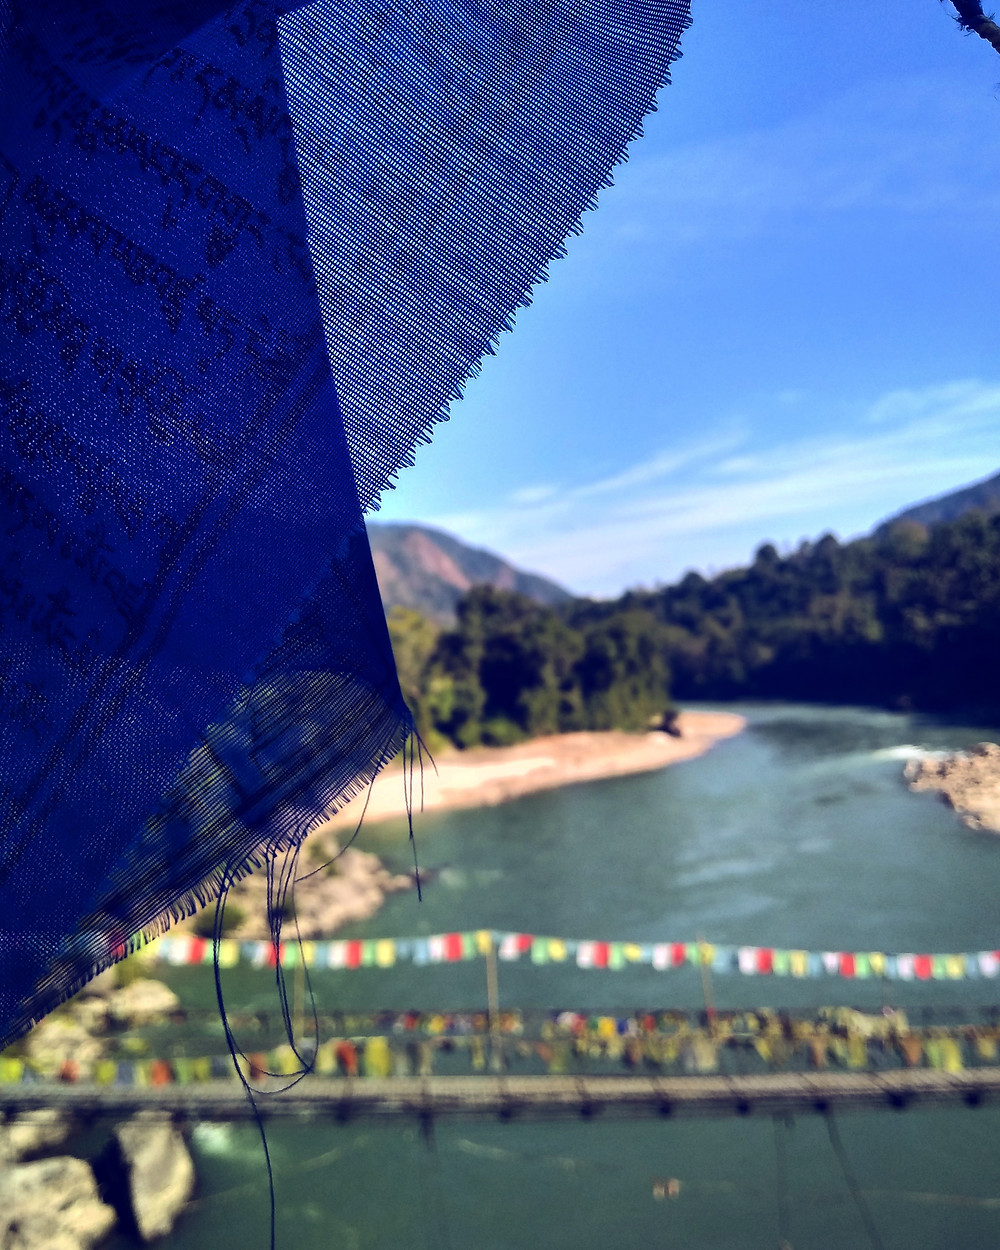 Buddhist prayer flags on a bridge